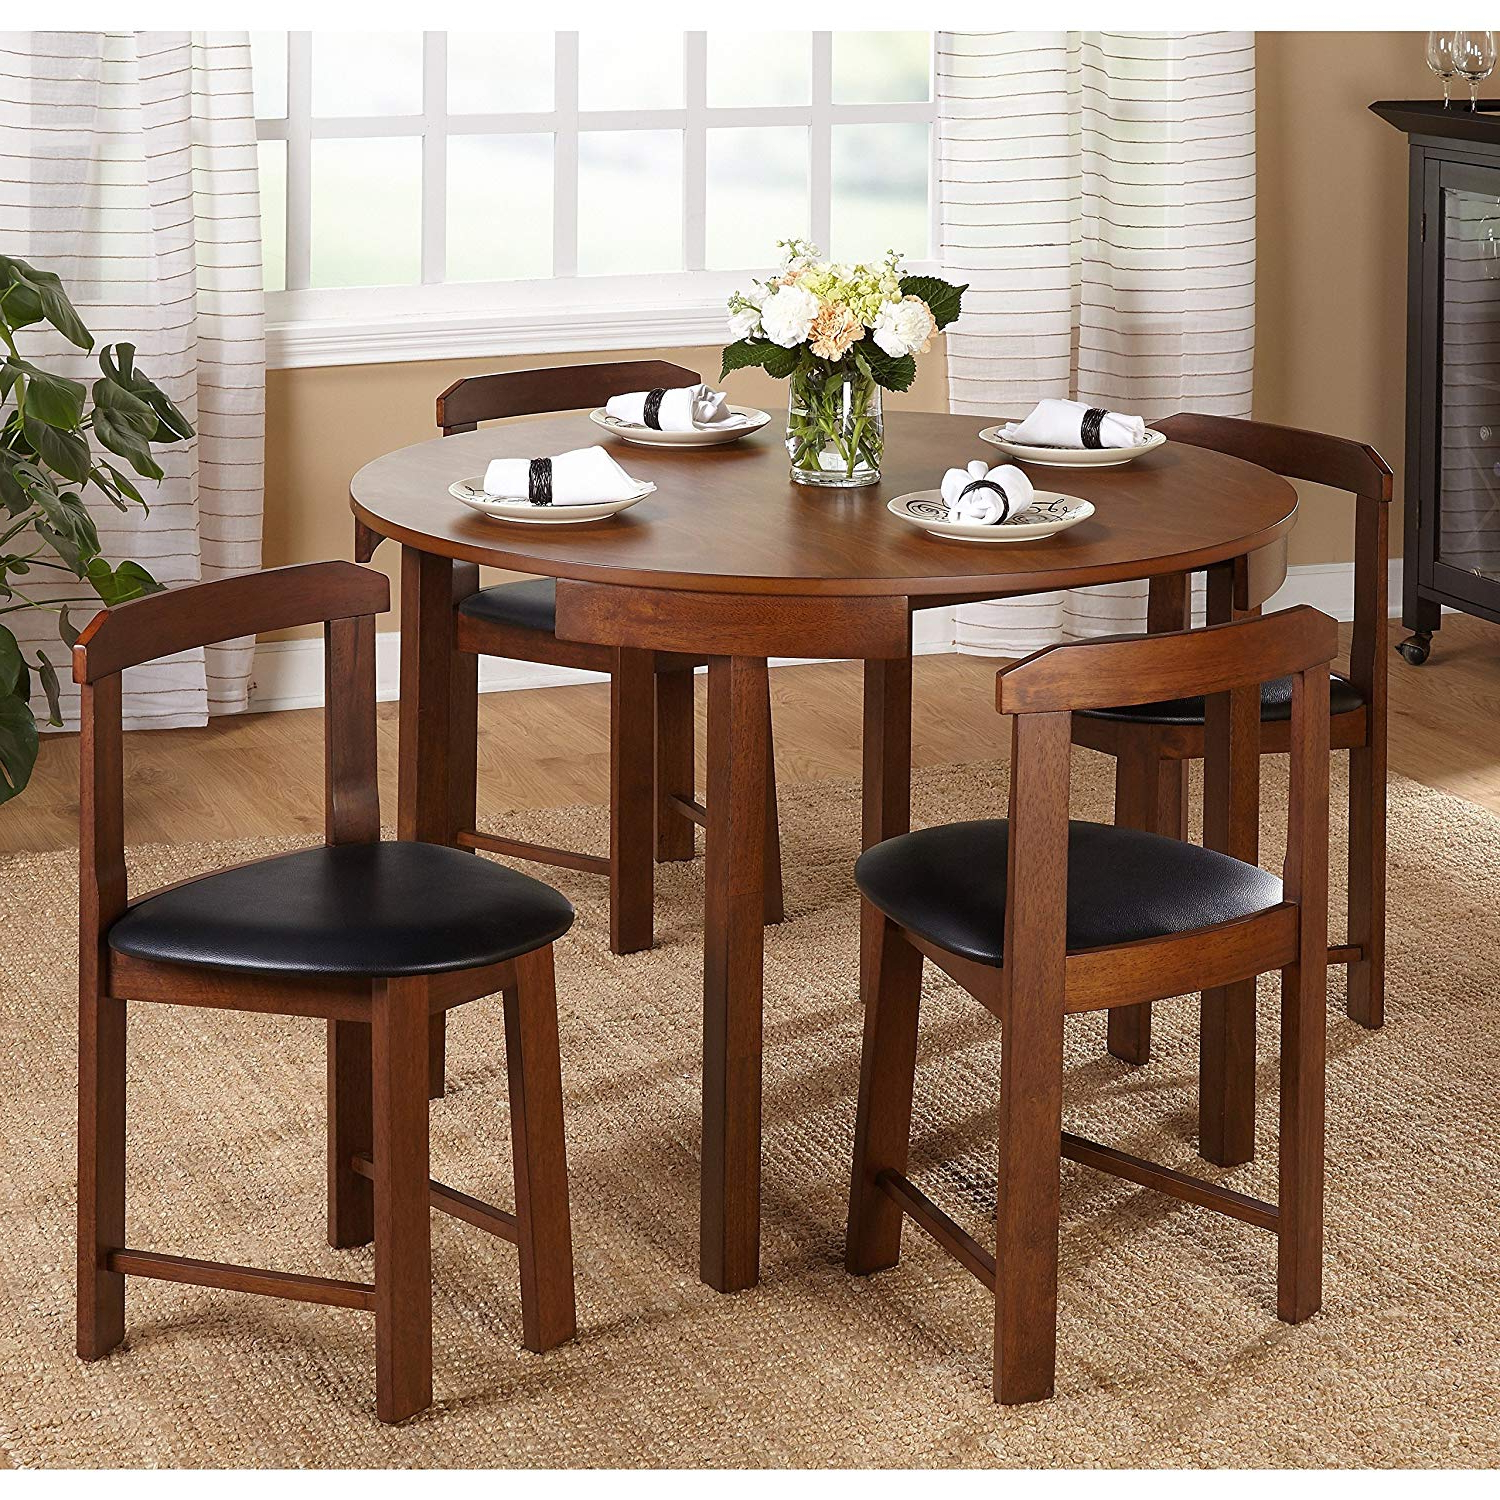 Preferred Debby Small Space 3 Piece Dining Sets Regarding 5 Piece Compact Round Dining Set Home Living Room Furniture (Walnut/black Faux Leather) (View 23 of 25)